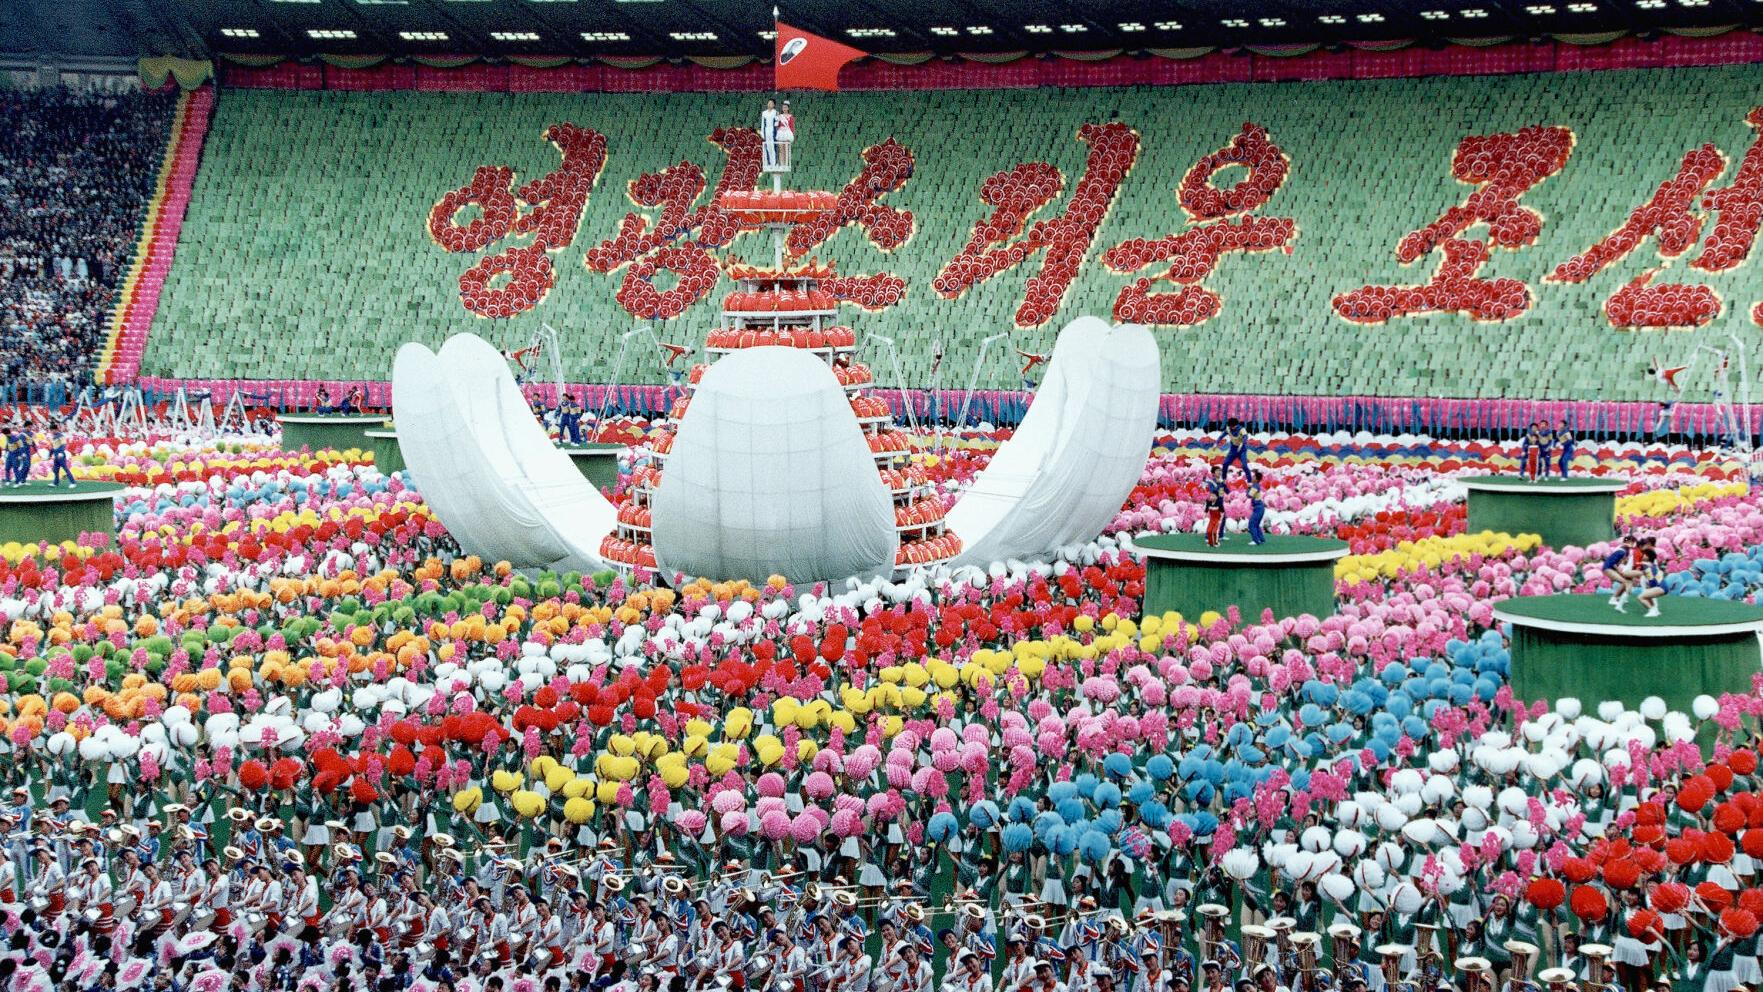 North Korea Pyongyang Celebration of the 80th Birthday for Kim Il Sung